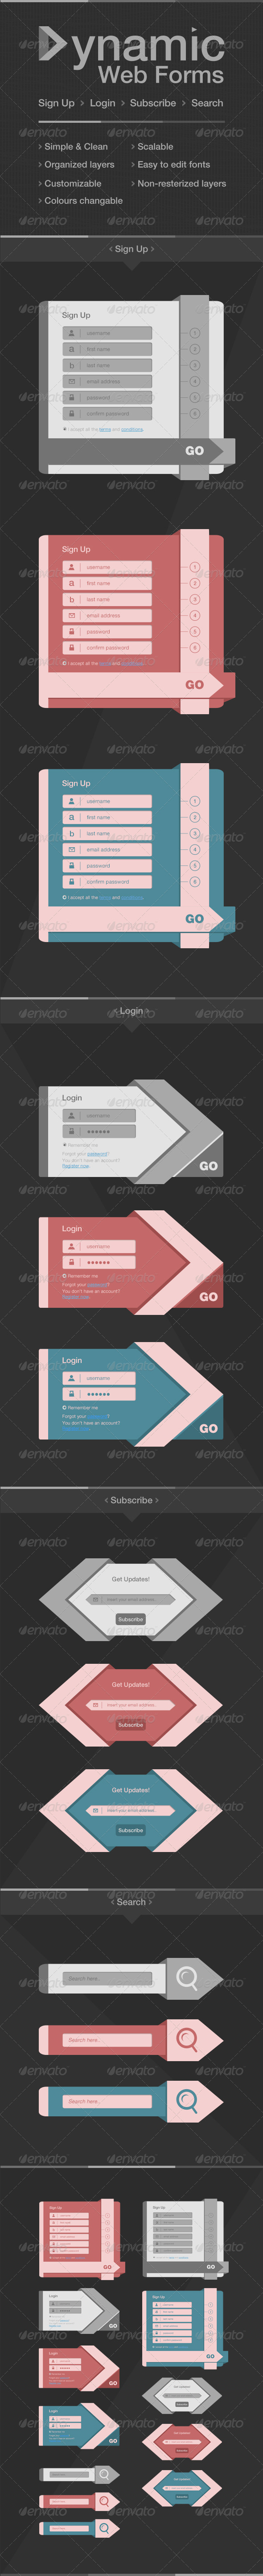 GraphicRiver Dynamic Web Forms 6124001